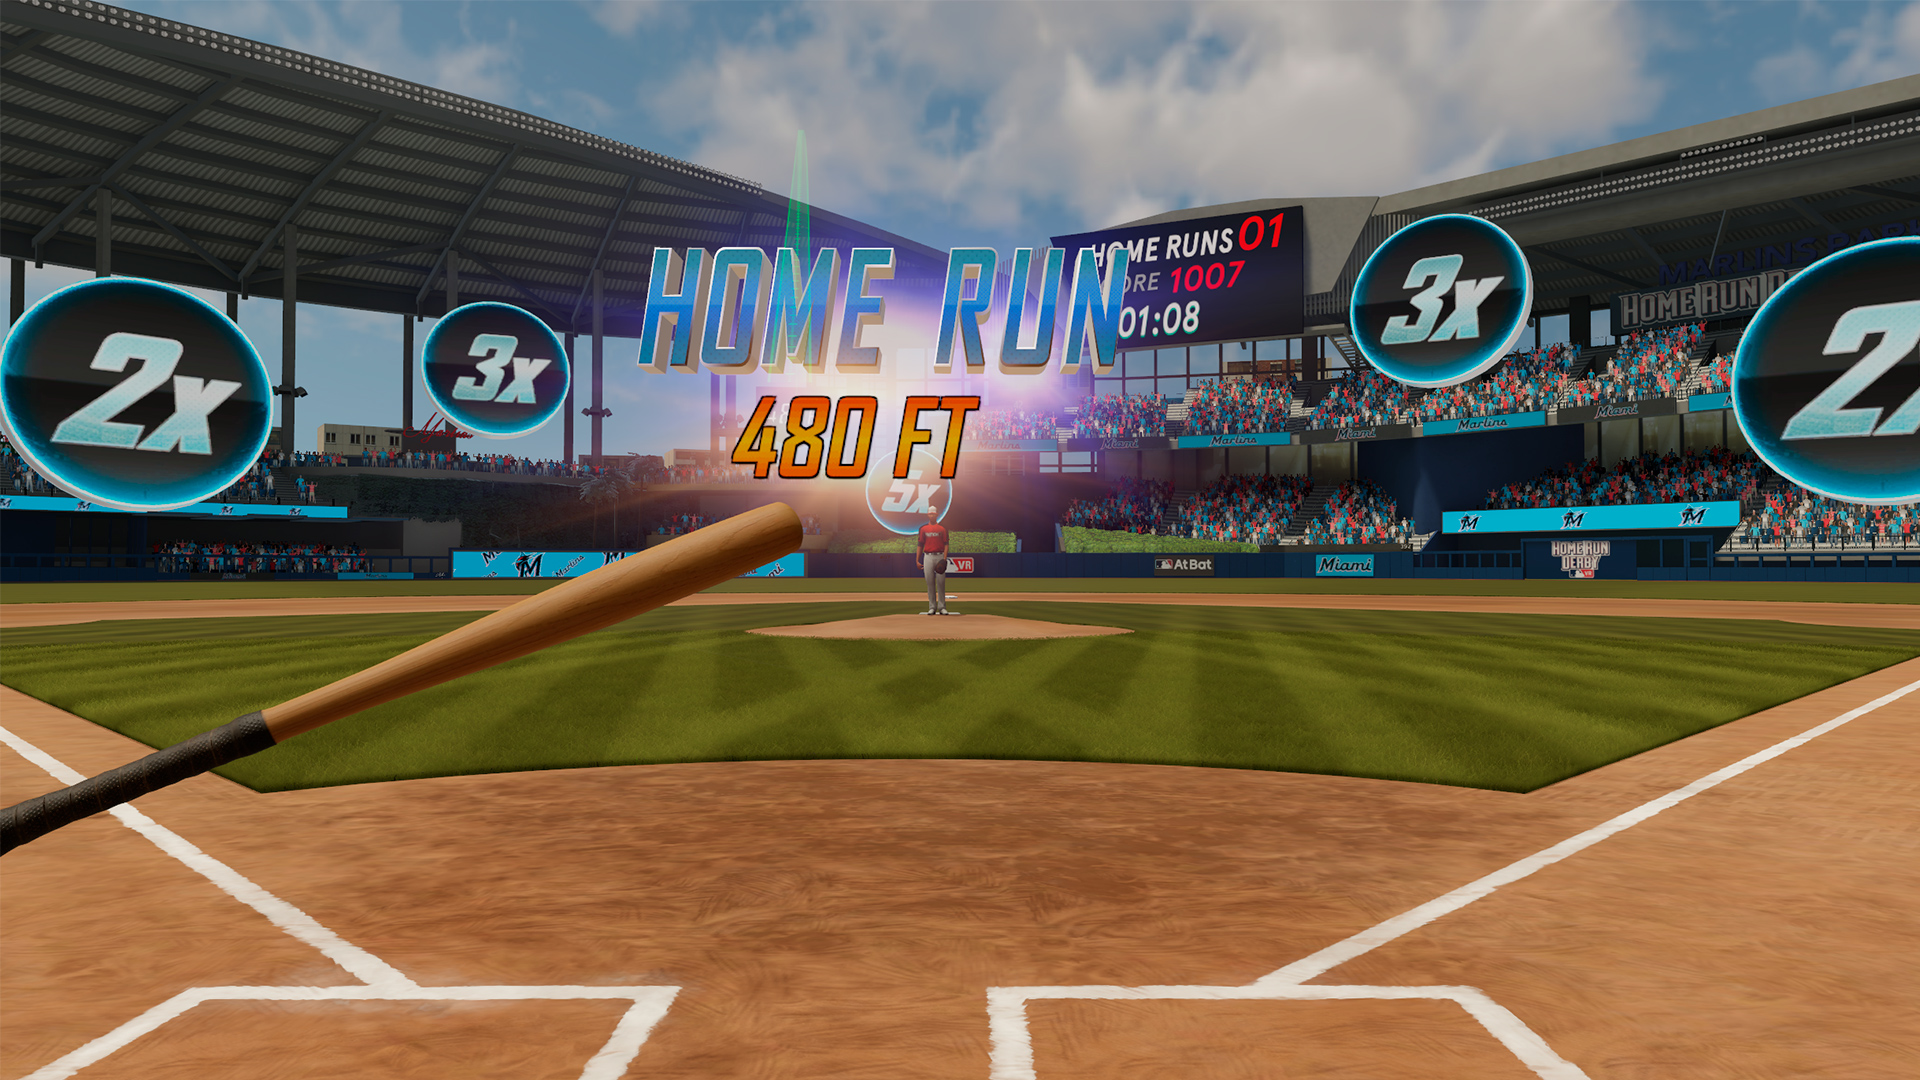 Home run derby pictures 2020